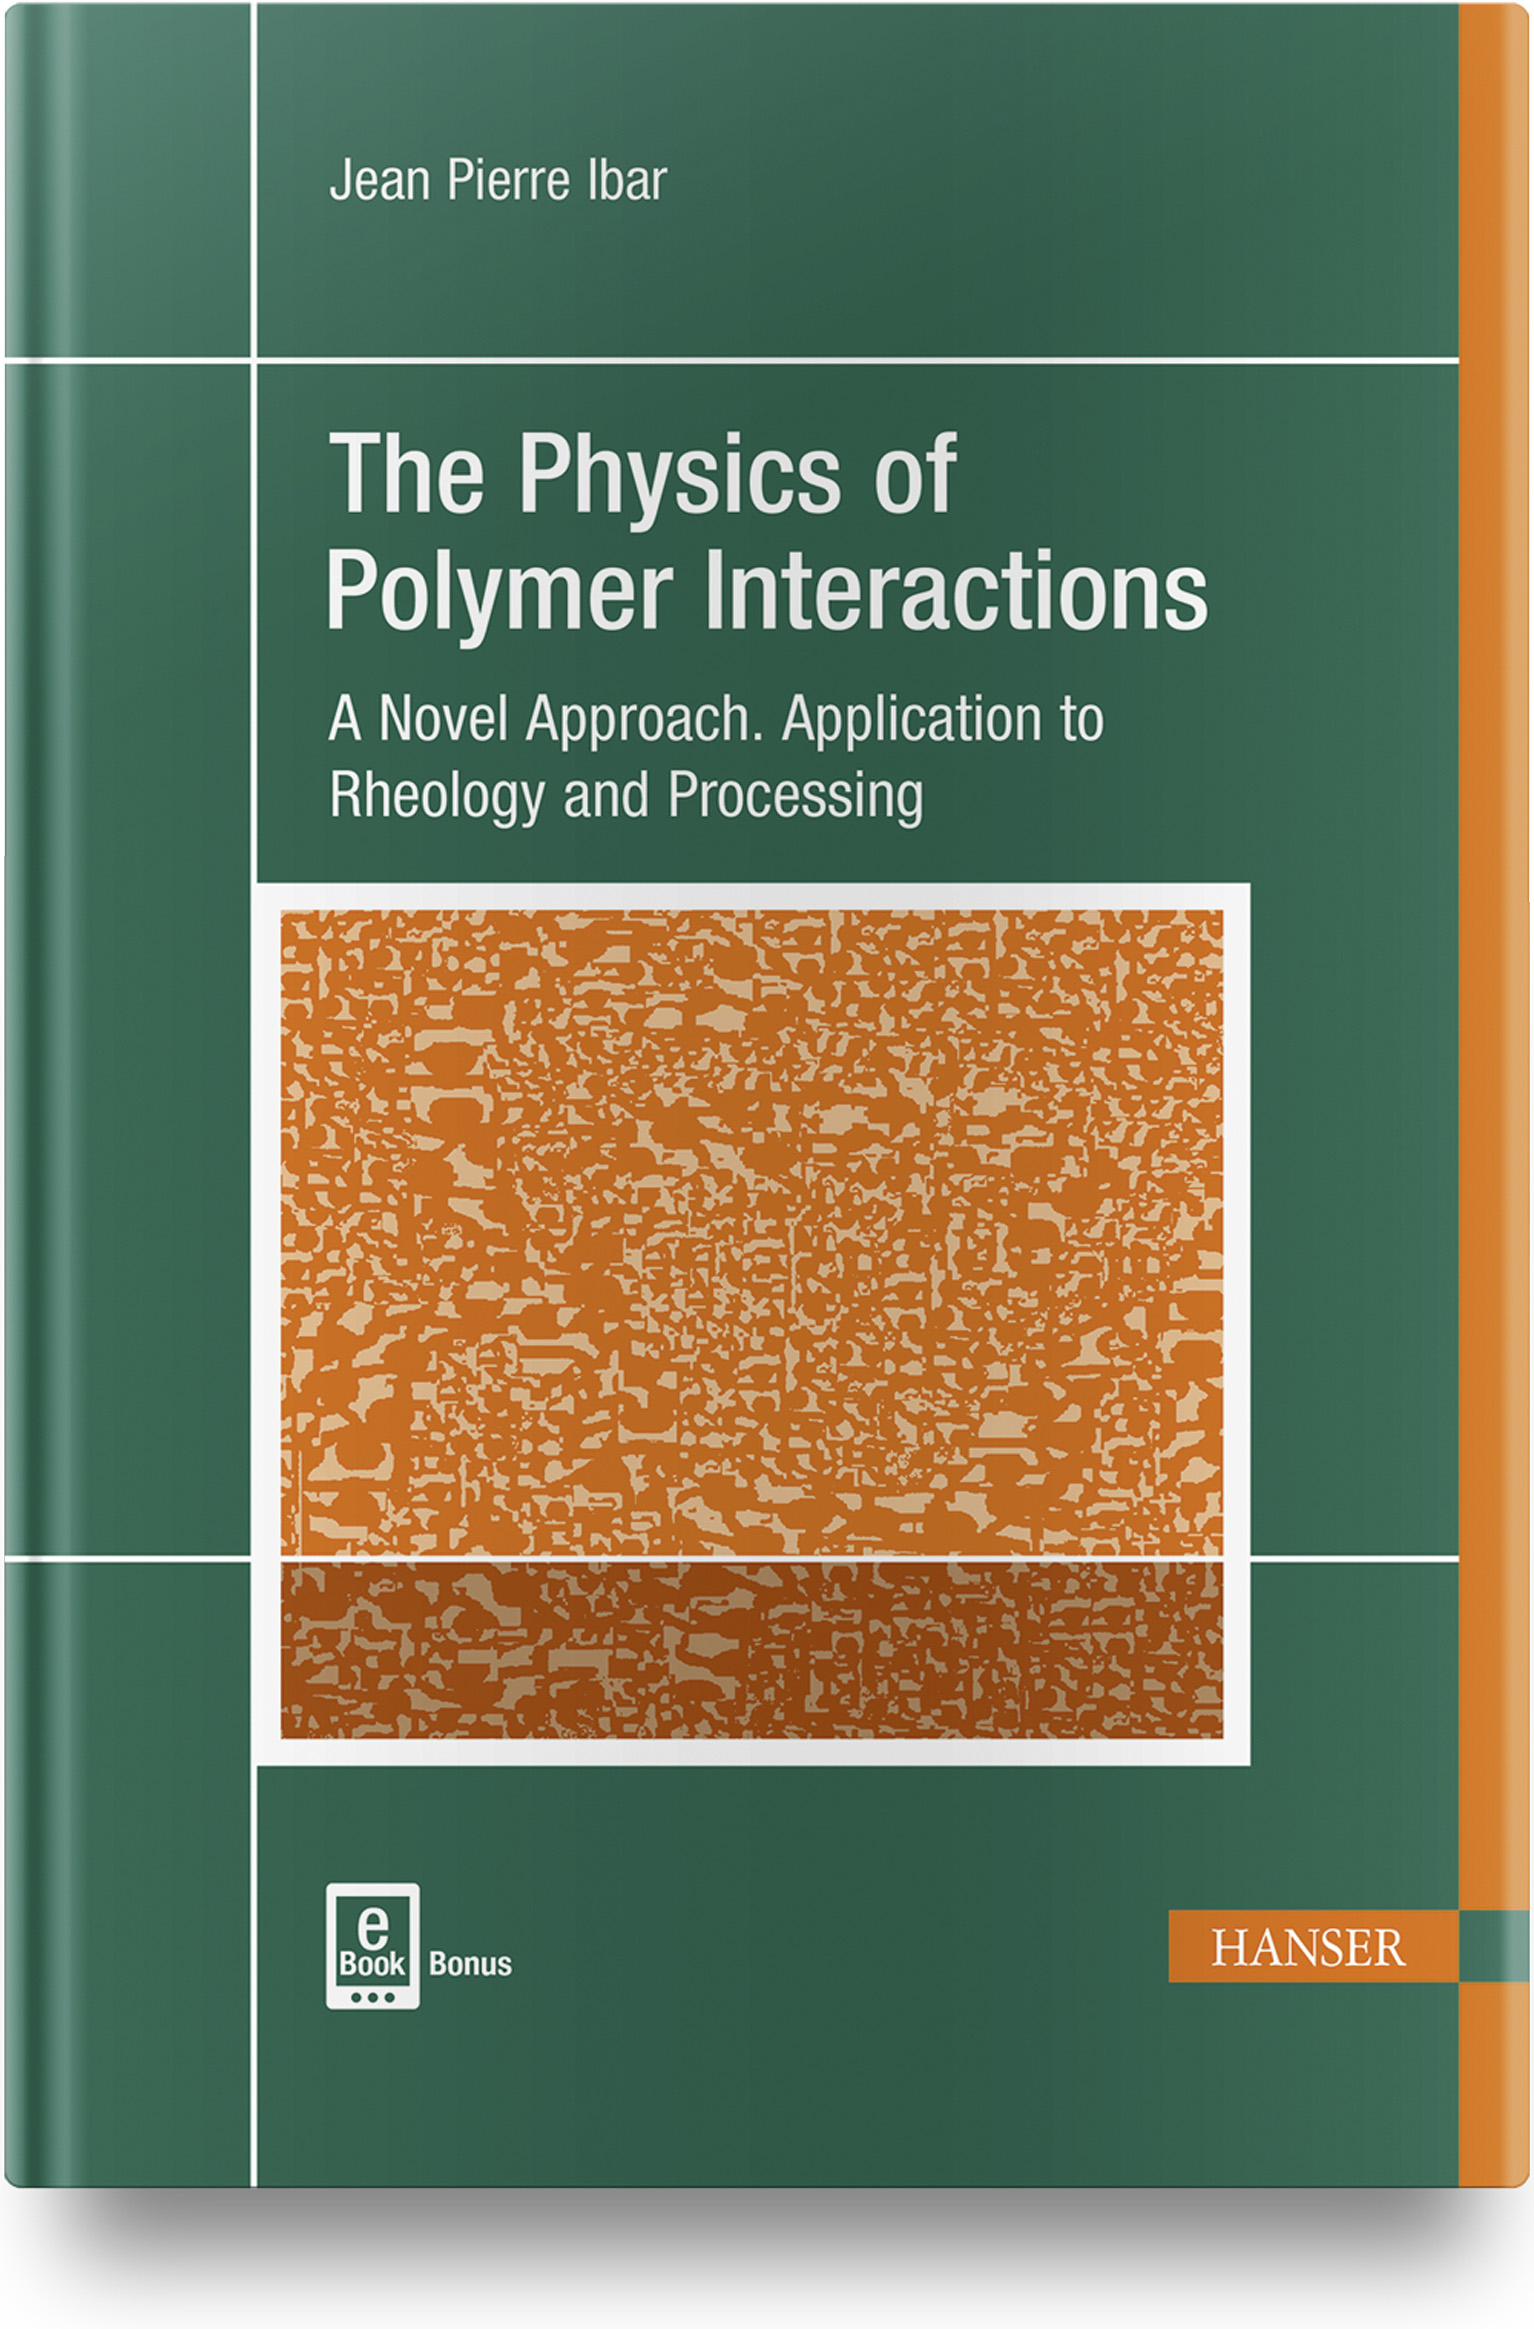 Ibar, The Physics of Polymer Interactions, 978-1-56990-710-8